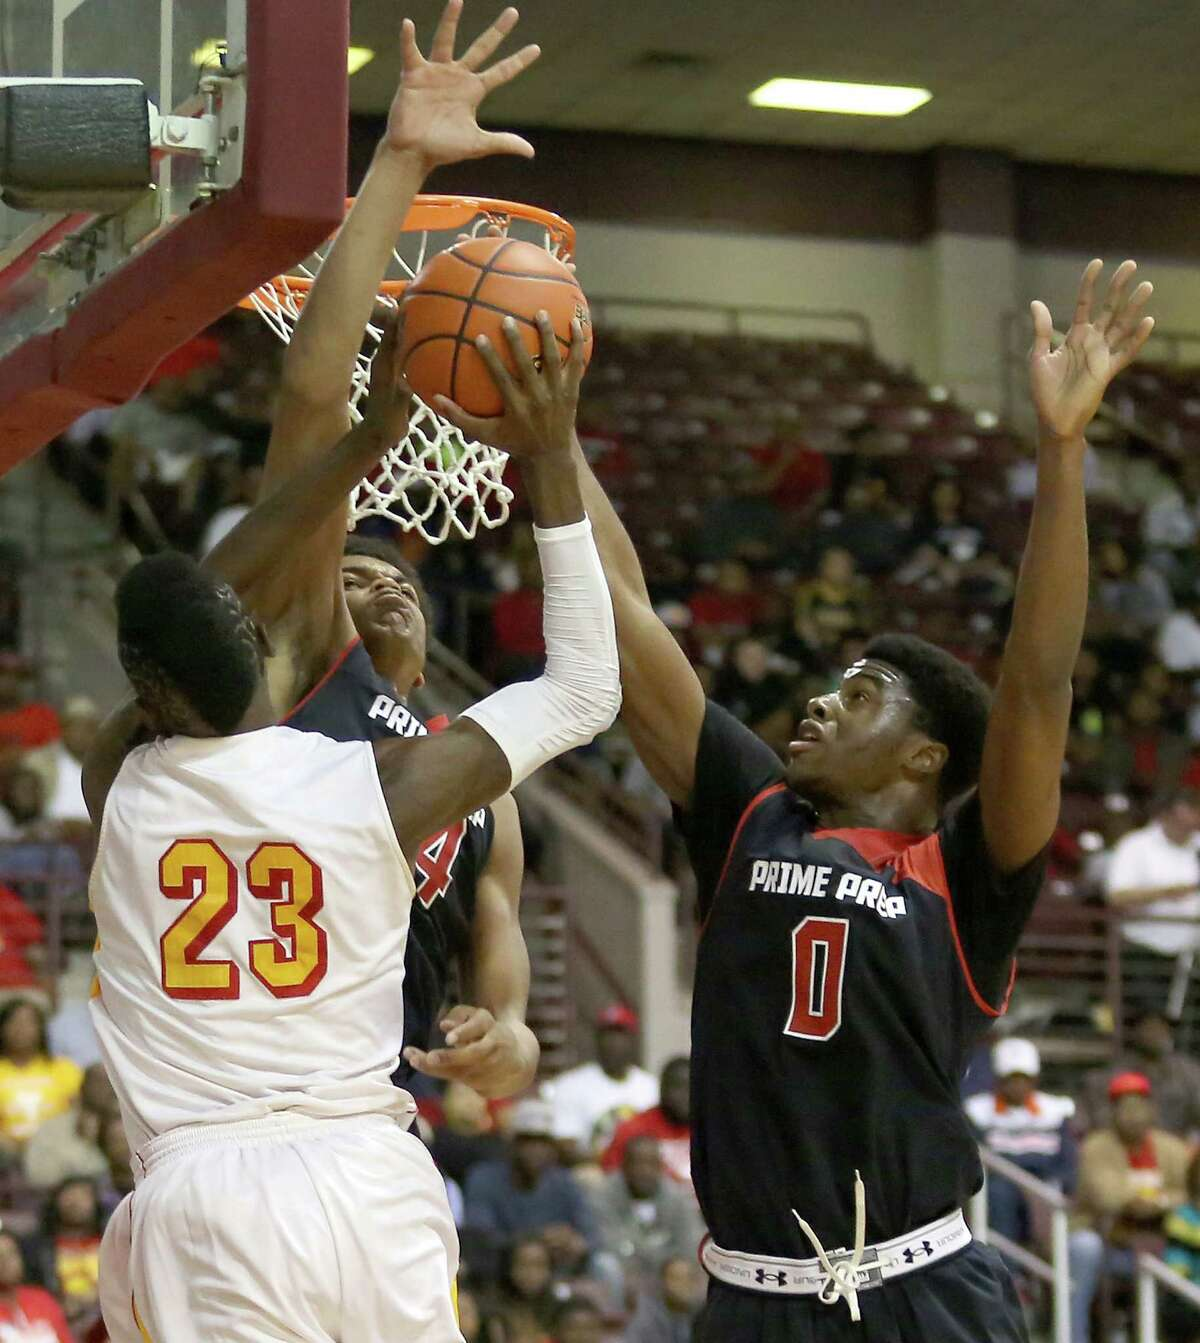 Yates' Melvin Swift (23) finds his path to the basket blocked by Dallas Prime Prep's Andrean Johnson and Emmanuel Mudiay (0) in Monday night's game.